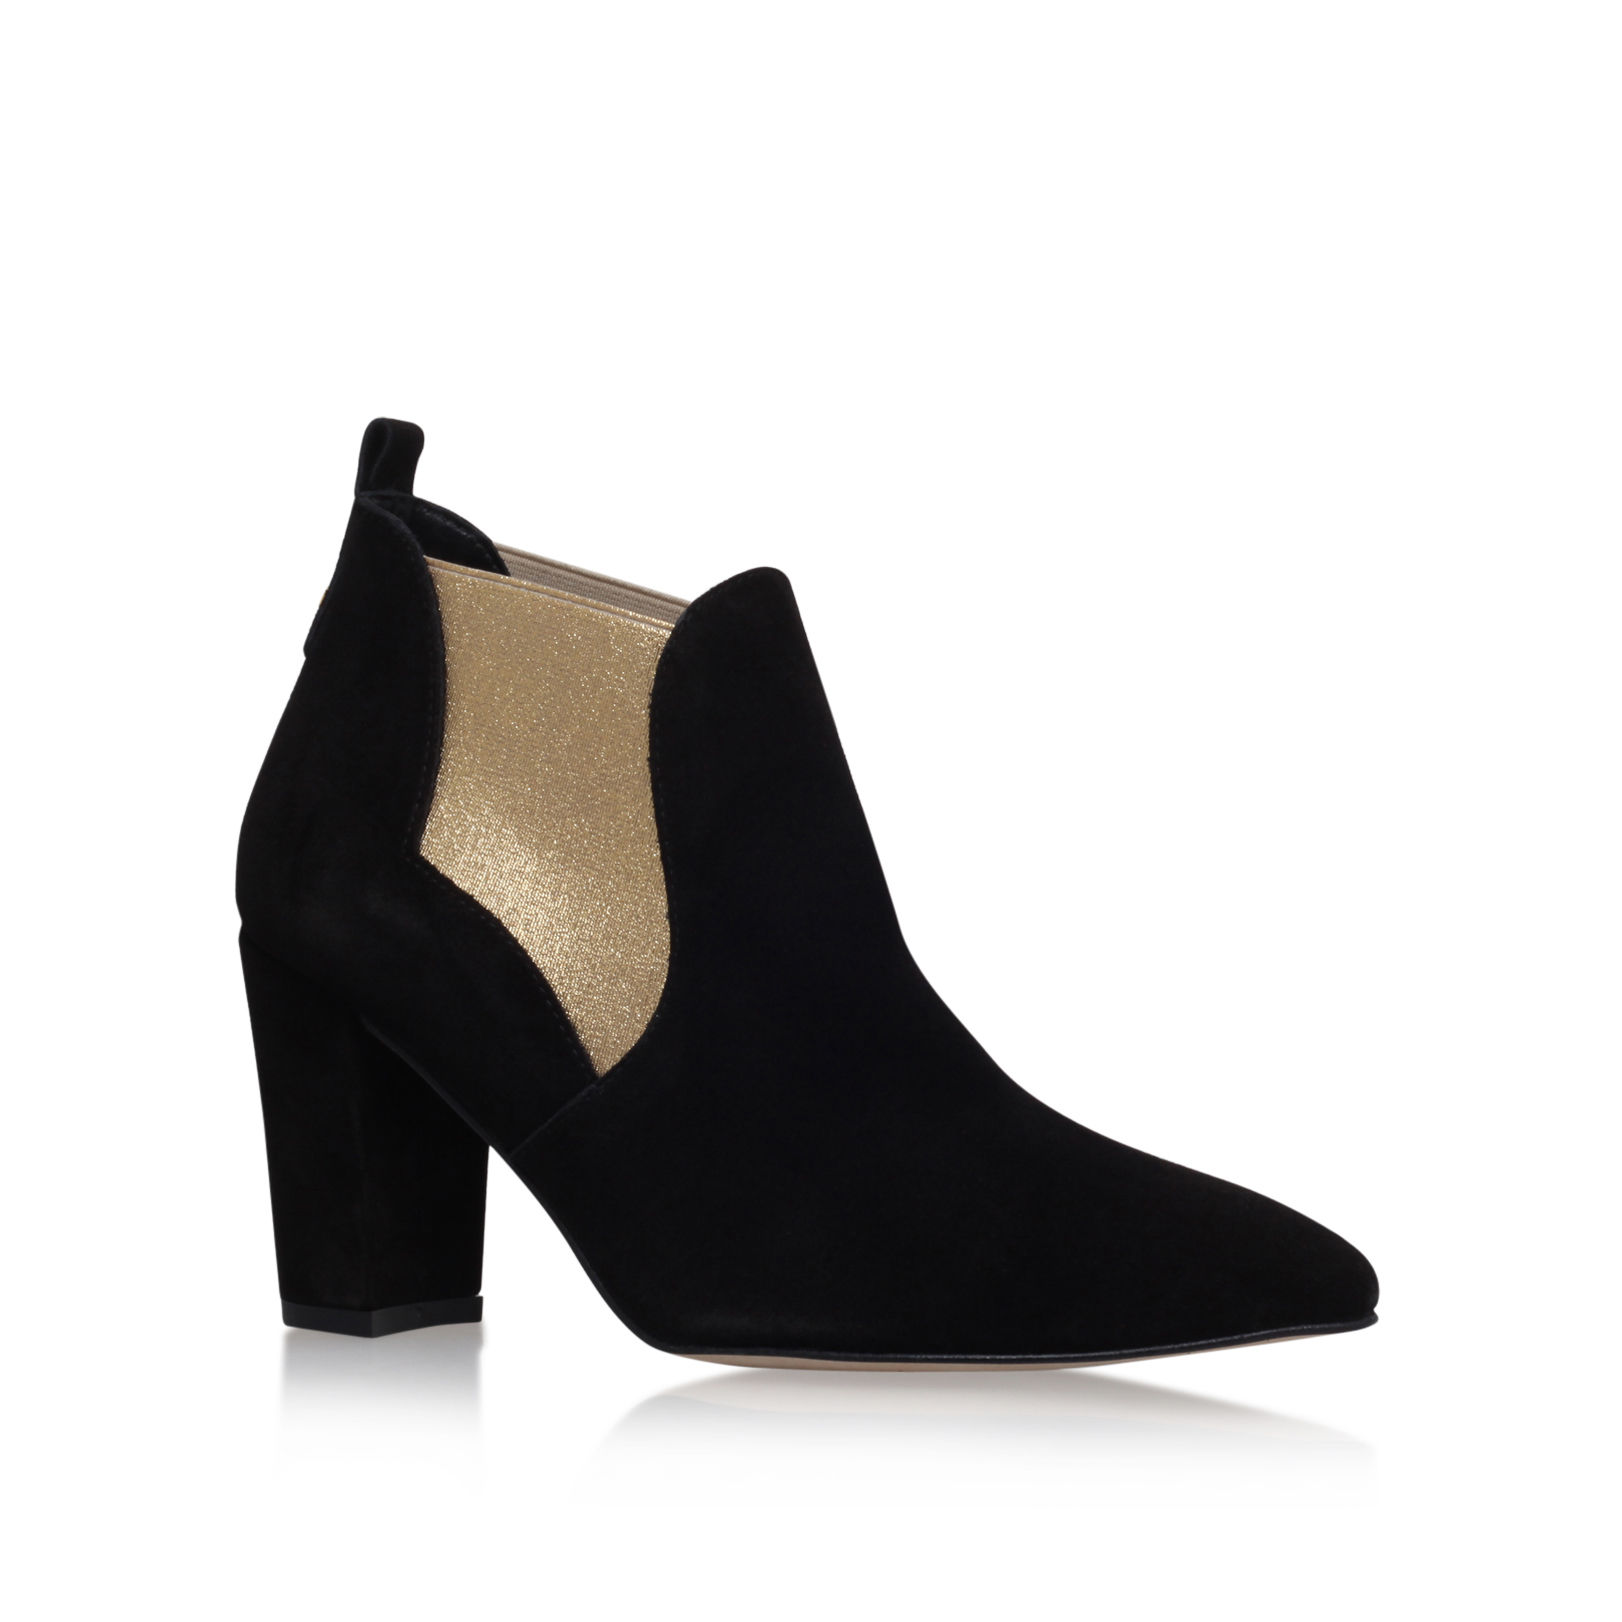 SUEDE ANKLE MID HEEL BOOT